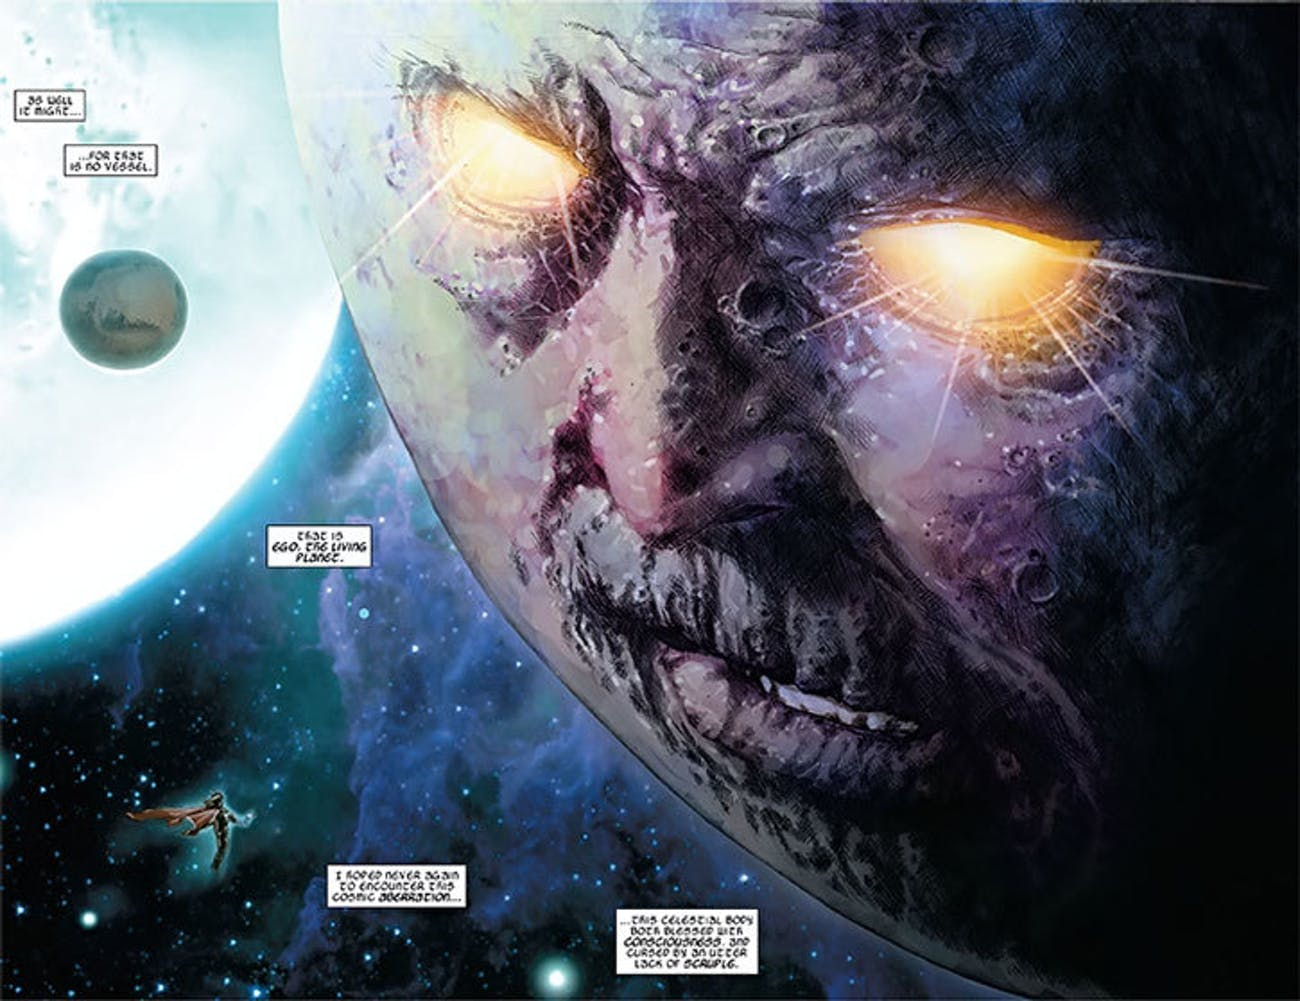 Ego the Living Planet in Marvel Comics